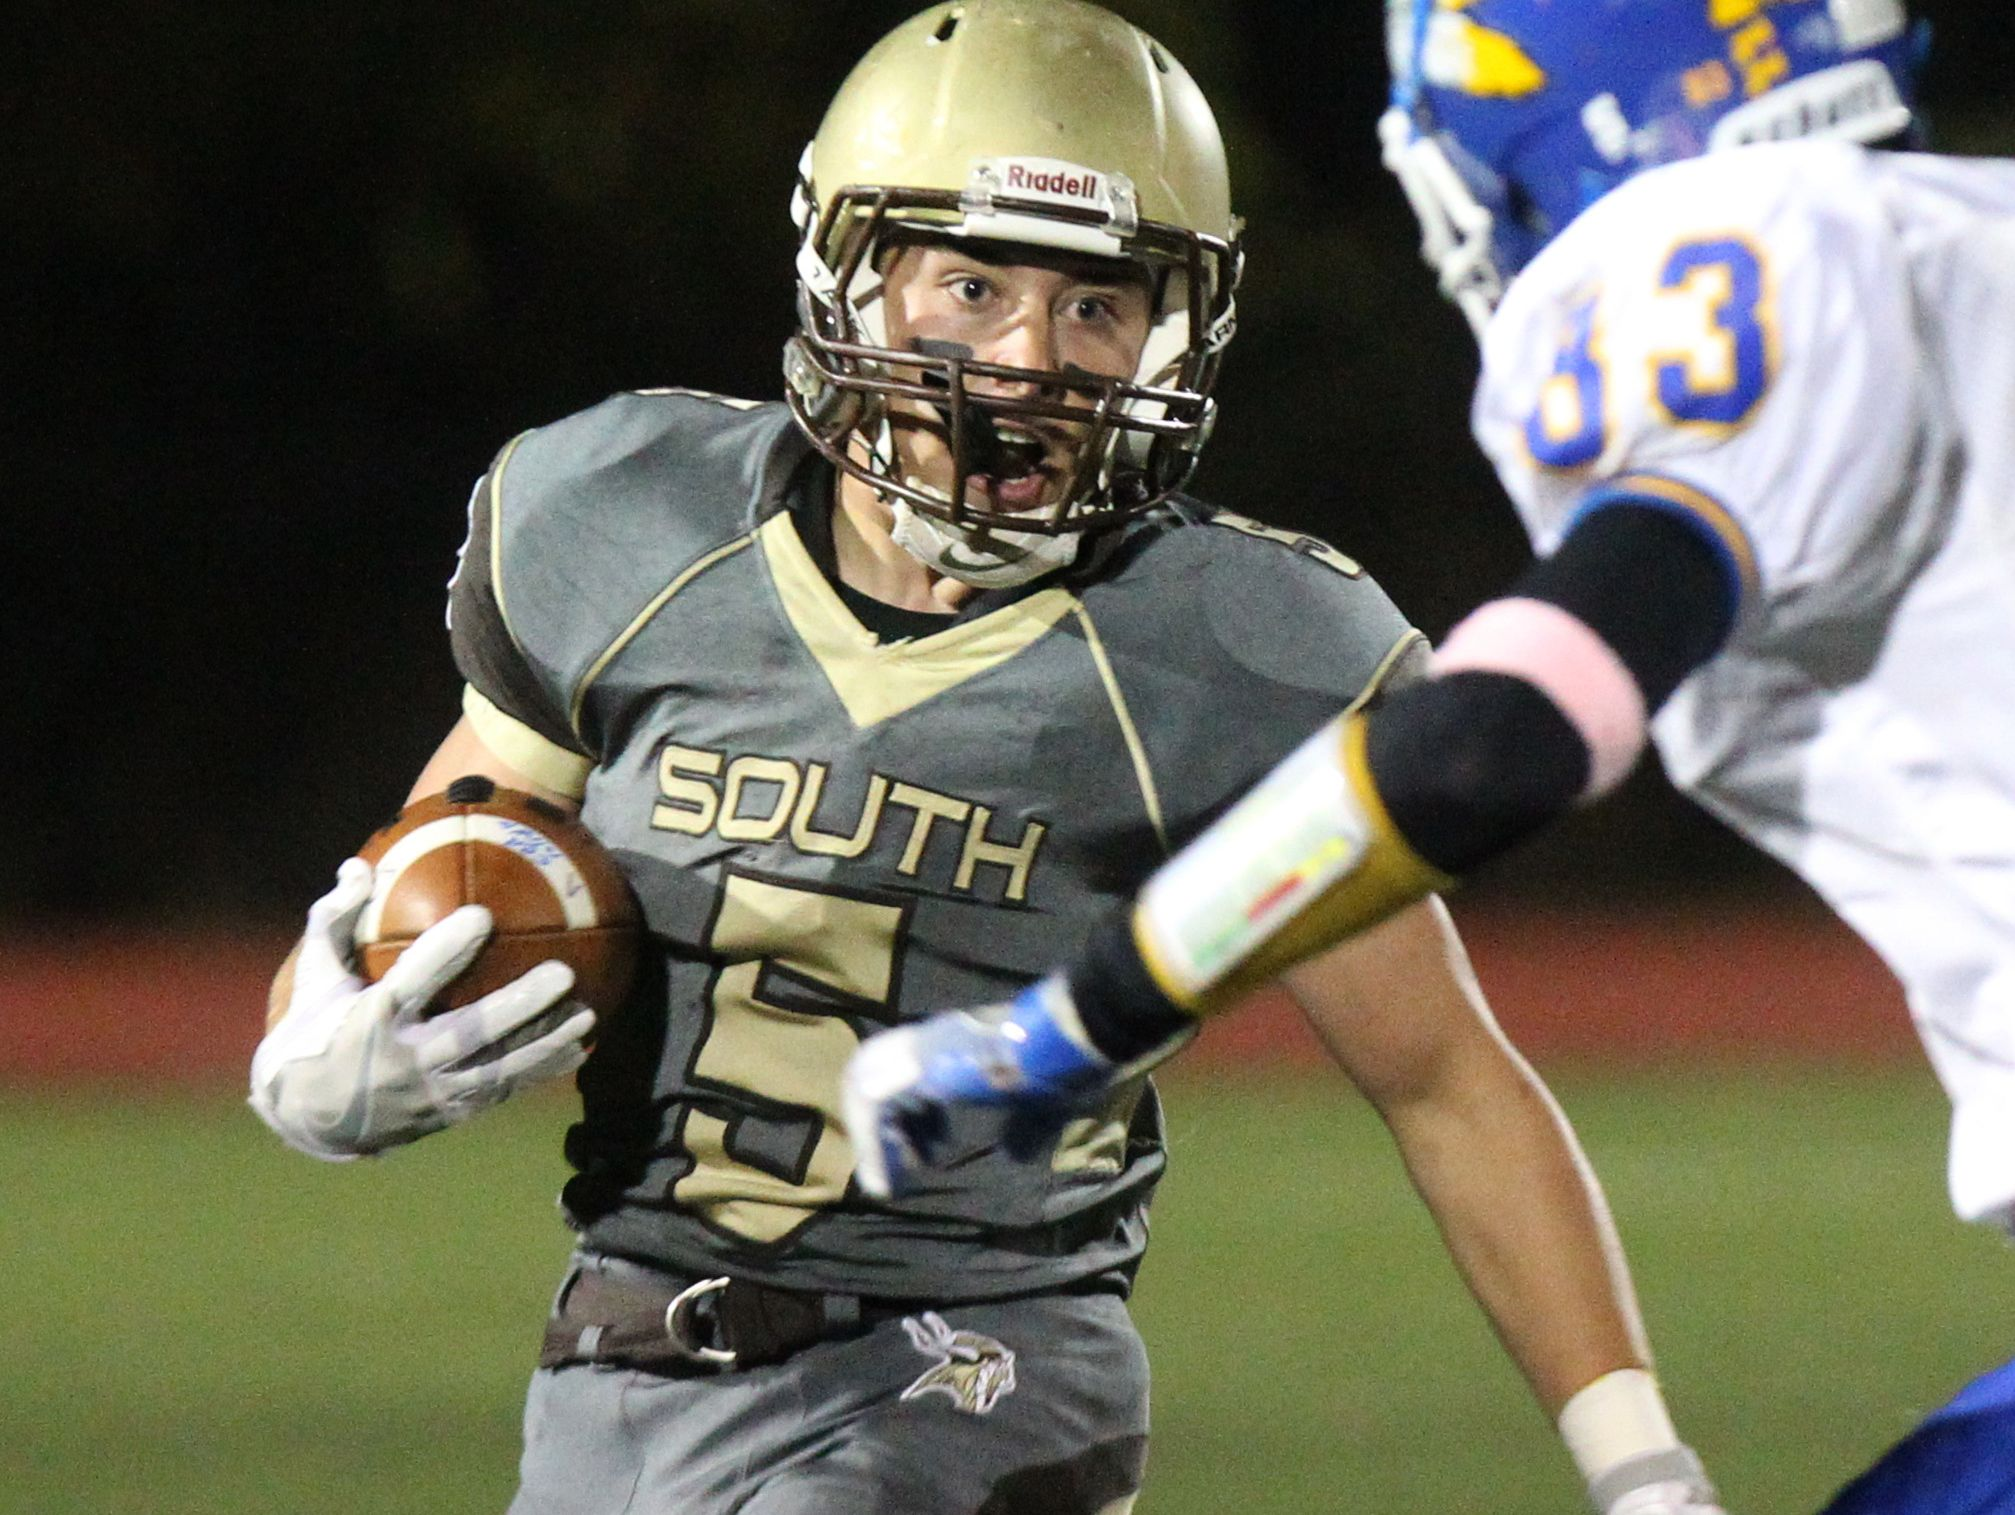 Clarkstown South's Ryan Thomas carries the ball during a Class AA playoff game at with Mahopac at Clarkstown South Oct. 14, 2016.